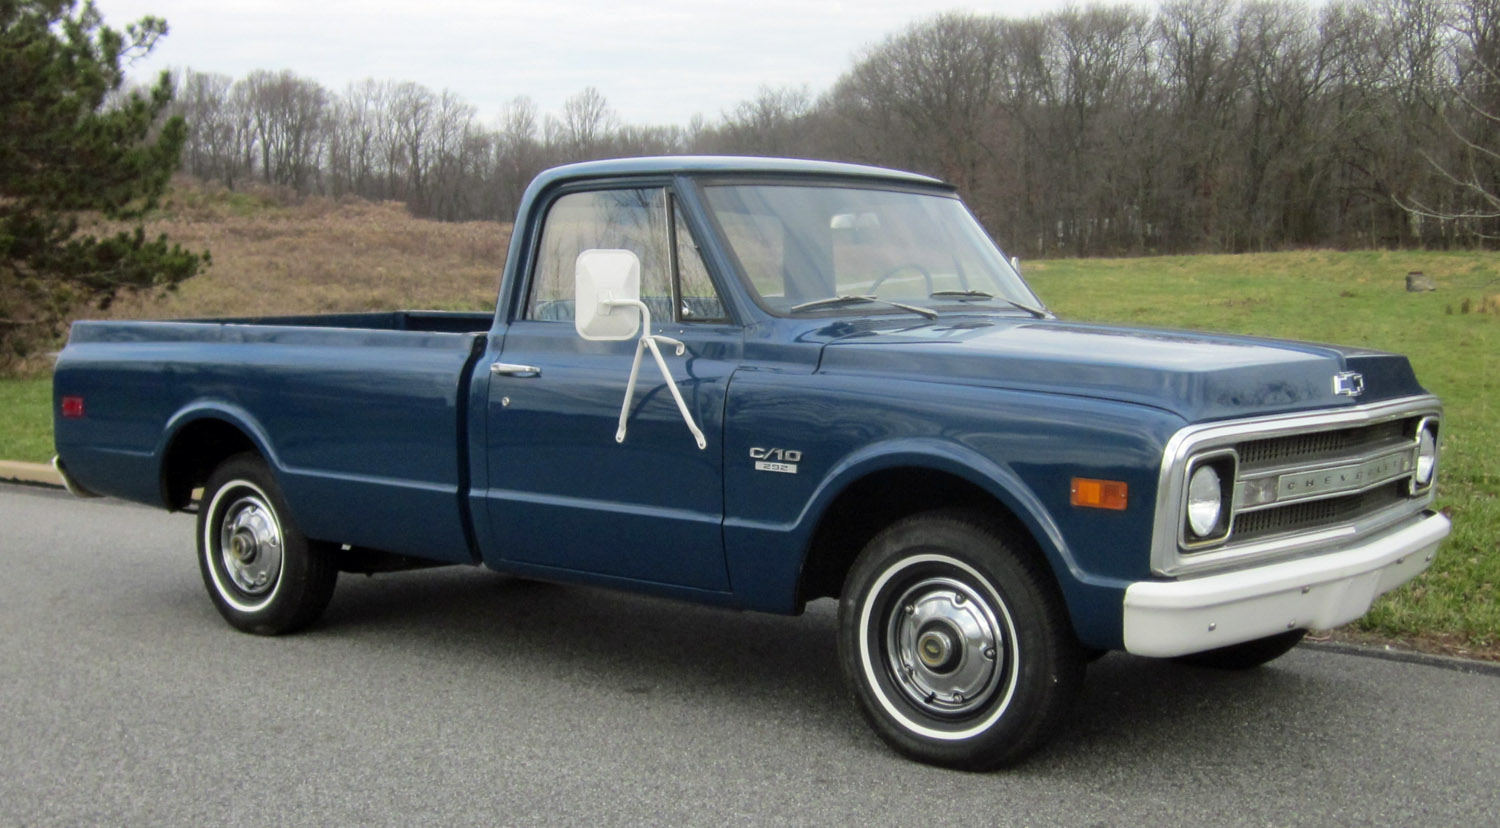 Showthread furthermore 1972 Chevrolet K 5 Blazer 4x4 Classic Convertible 4wd Suv 222019 moreover 1969 Chevrolet C10 likewise Photos in addition International Harvester A Series. on 1972 gmc 4x4 truck